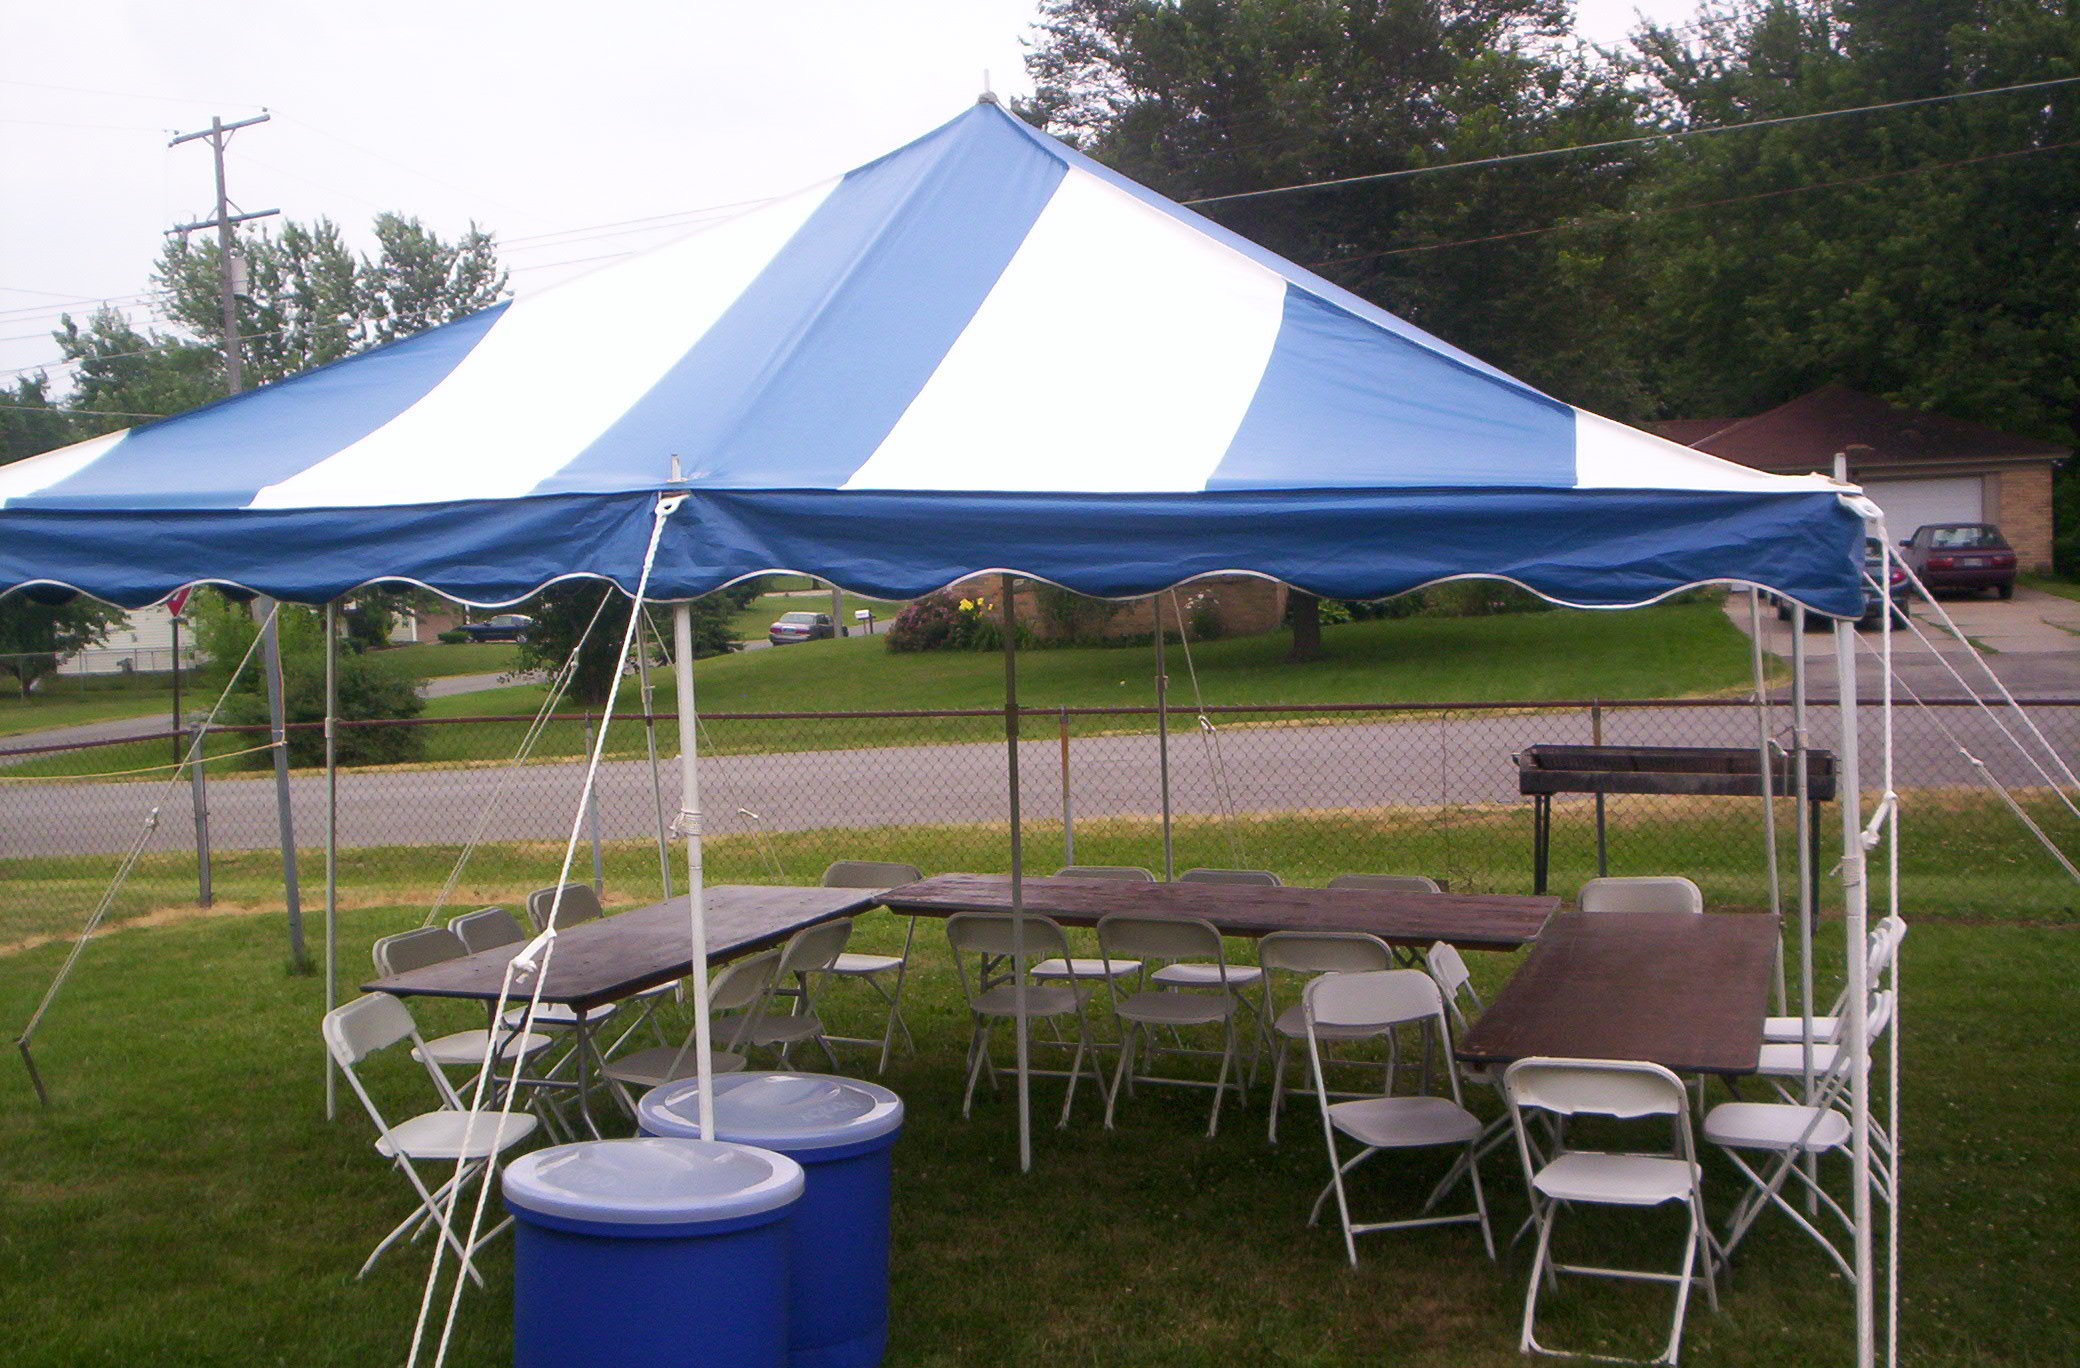 Wedding tents for 300 people - 10 X 10 Canopy